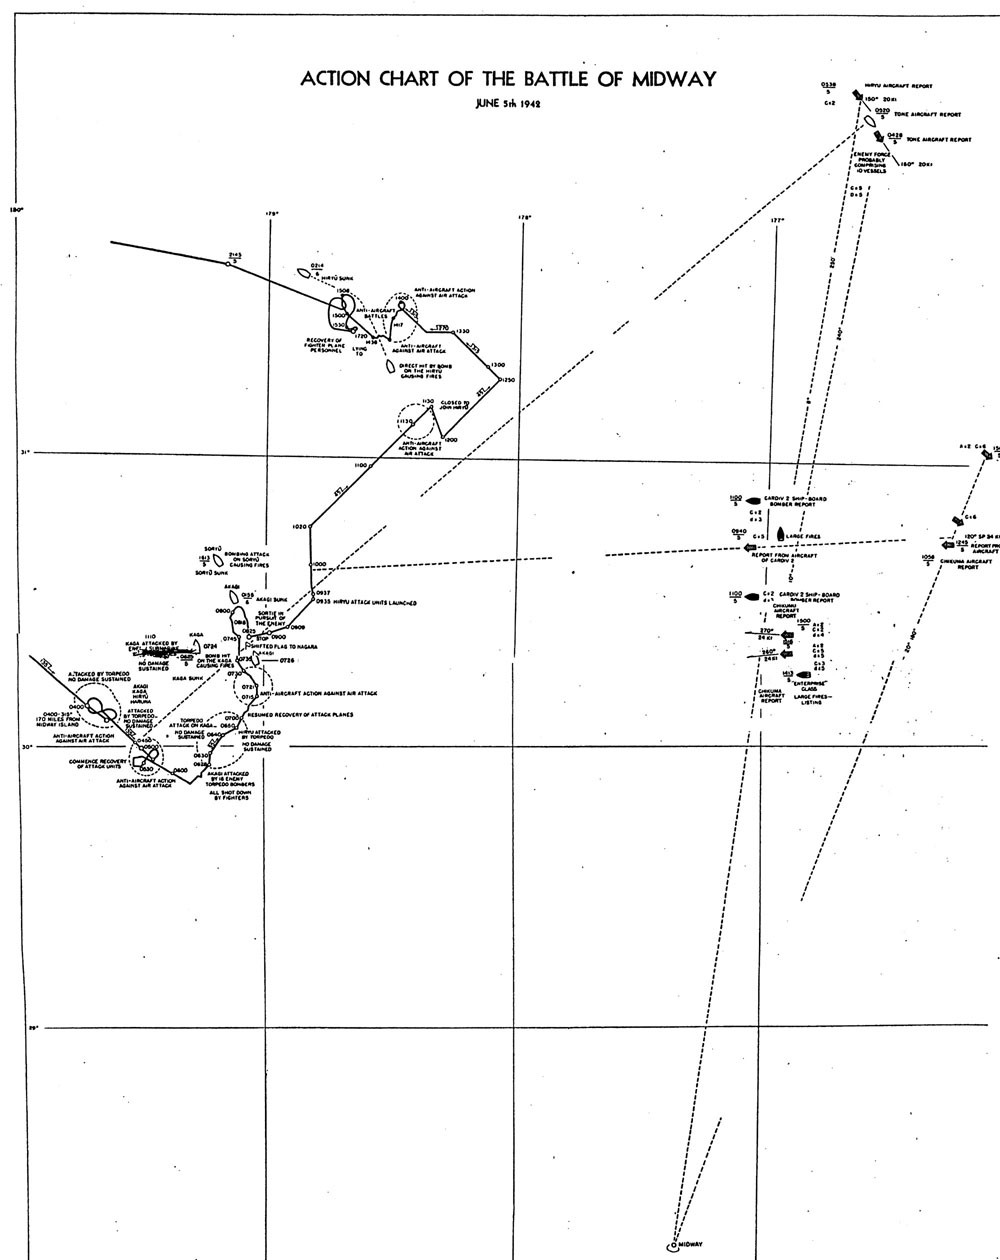 Image of Action Chart of the Battle of Midway, June 5th, 1942